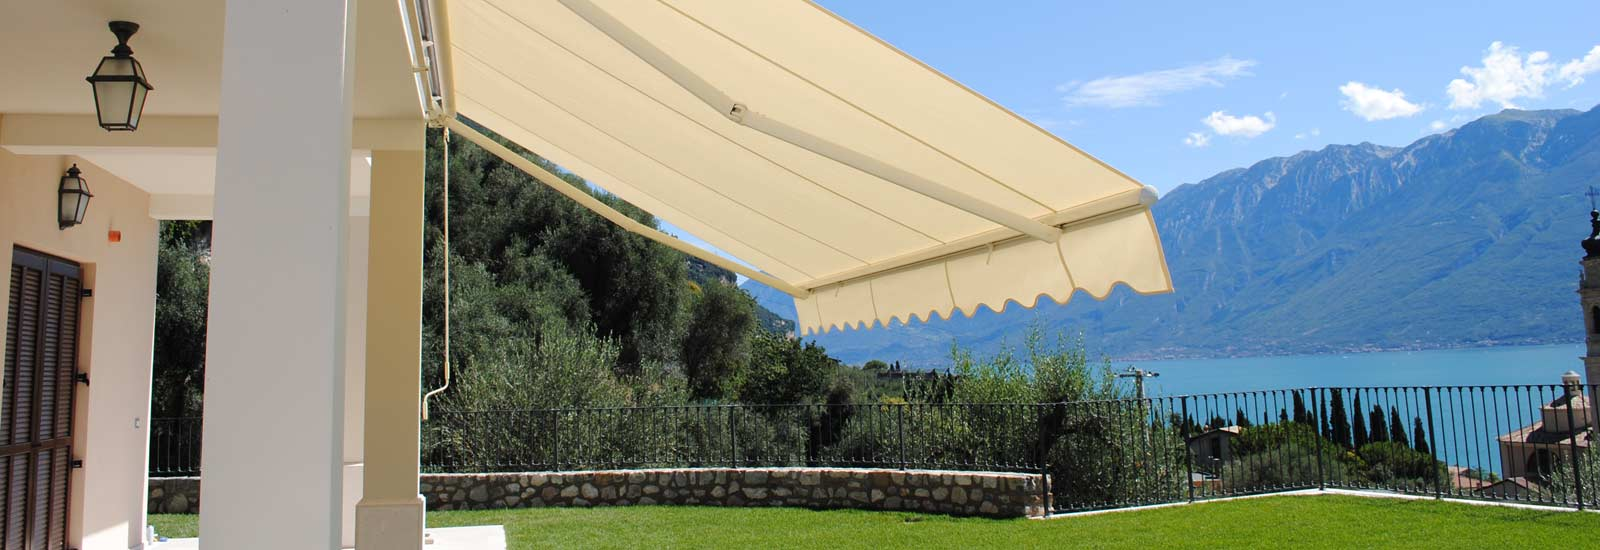 Casa Del Tappezziere Seregno drapes and upholstery products